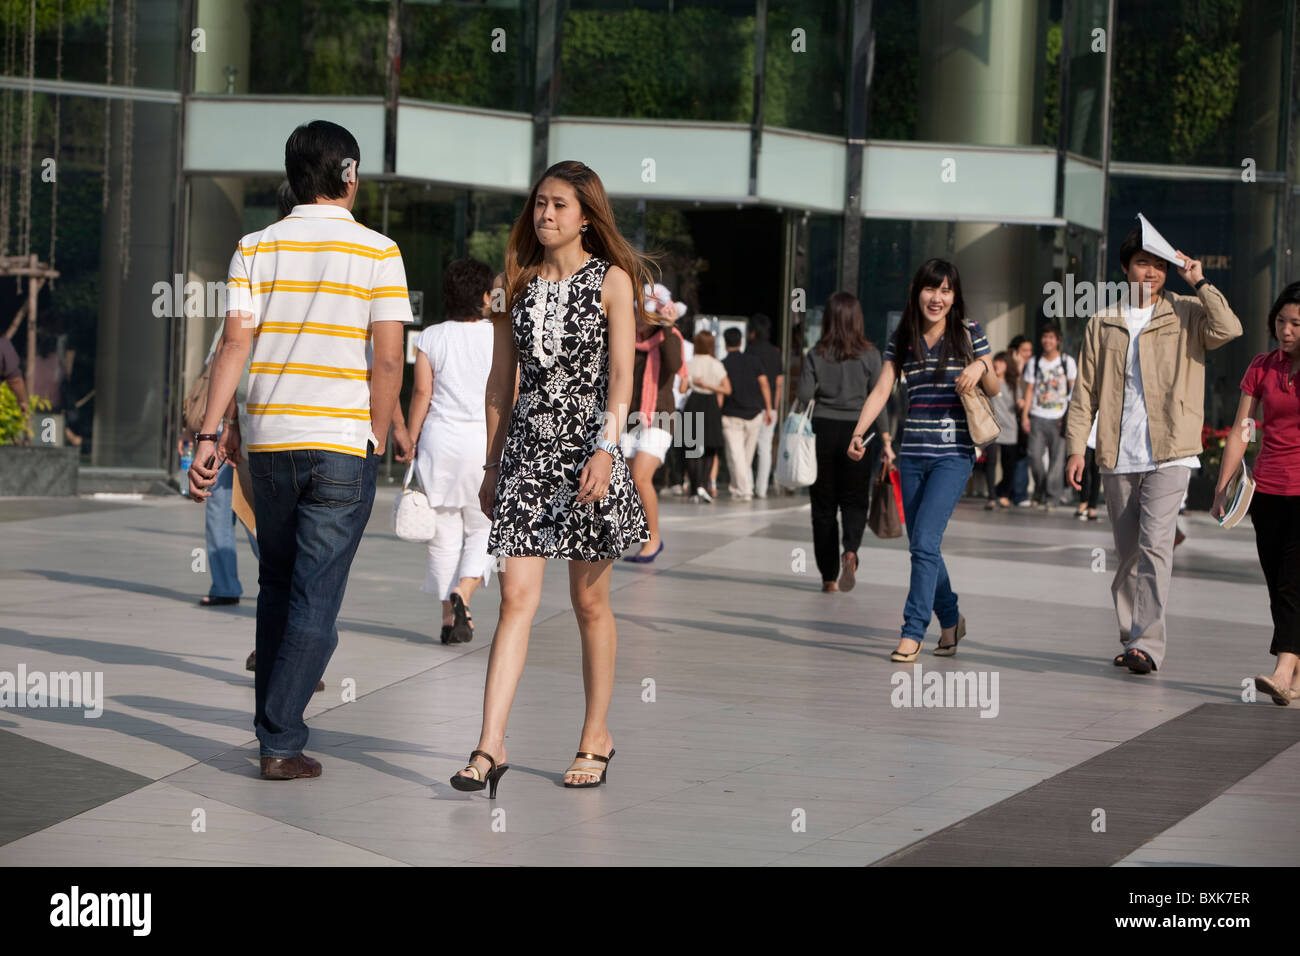 Shoppers at Siam Paragon Mall at Th Phra Ram I - Stock Image